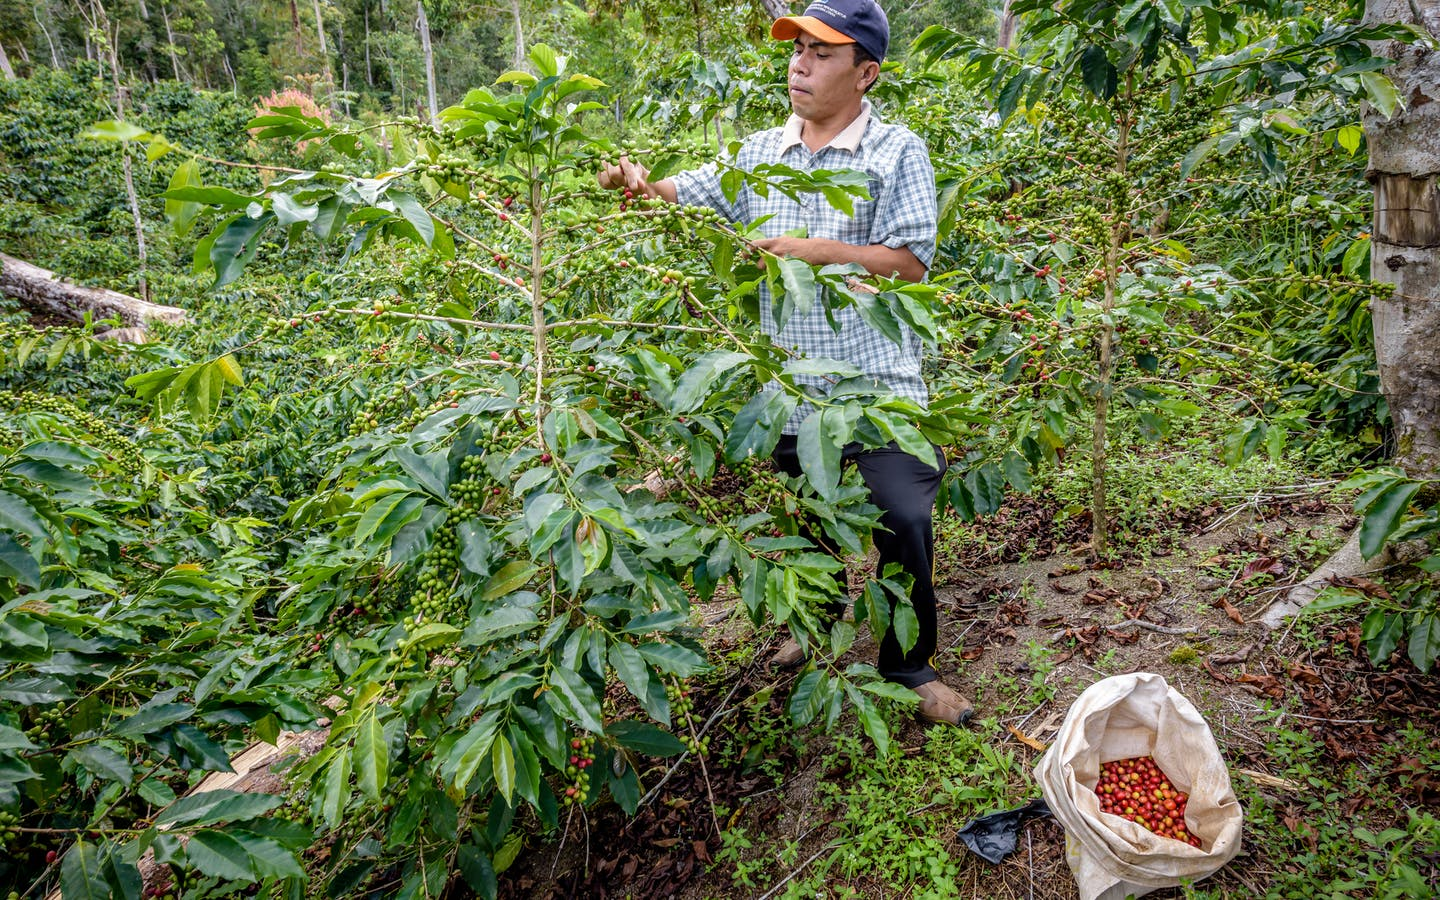 Mursal Sutami Lubis harvests coffee from his arabica coffee trees in Simpang Banyak village, Mandailing Natal, North Sumatra.